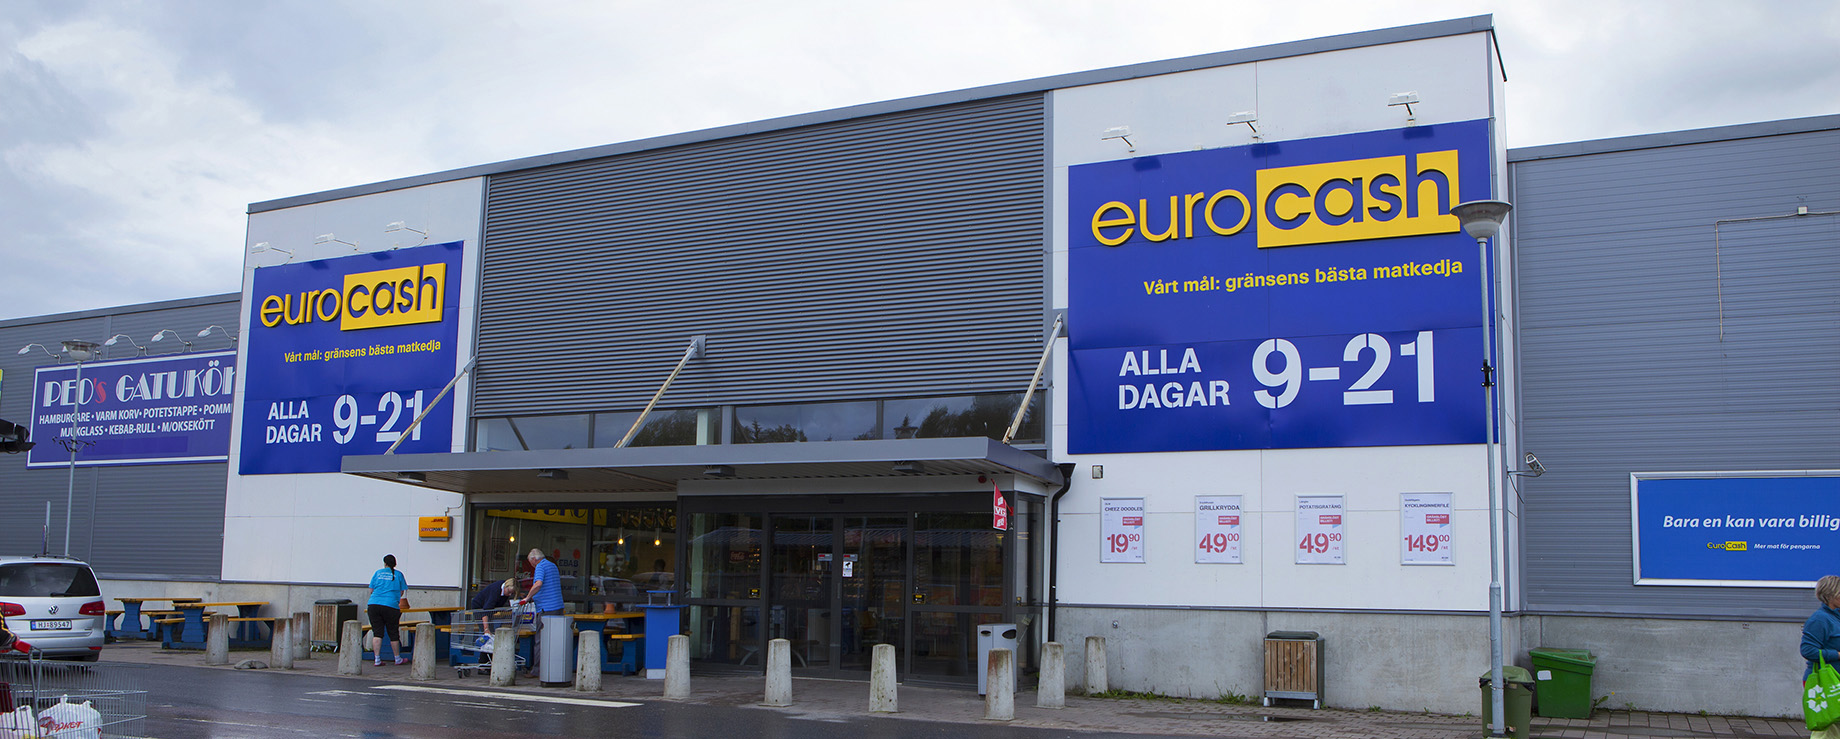 Eurocash, with its distinctive blue-yellow national colors, is owned by the largest private actor in Sweden, Axfood.